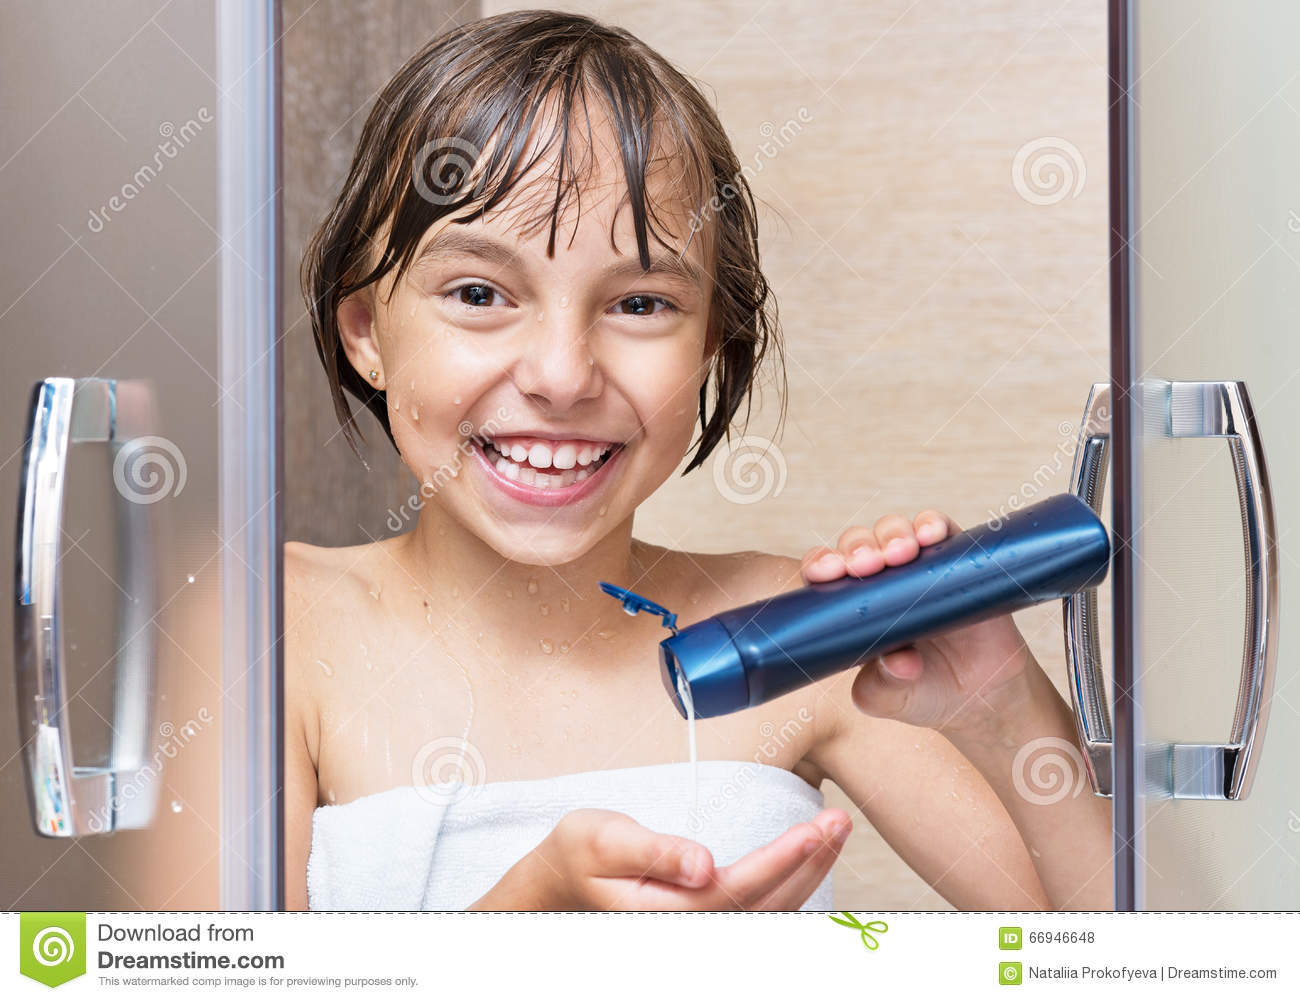 Little Girl In The Bathroom Stock Photo - Image: 66946648